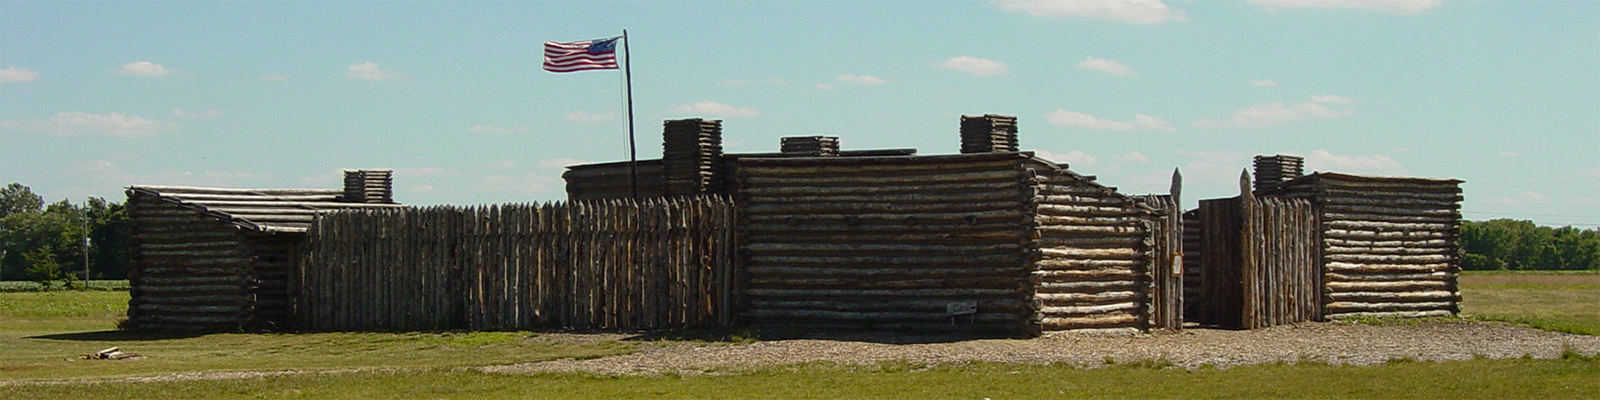 Fort at Lewis and Clark Site